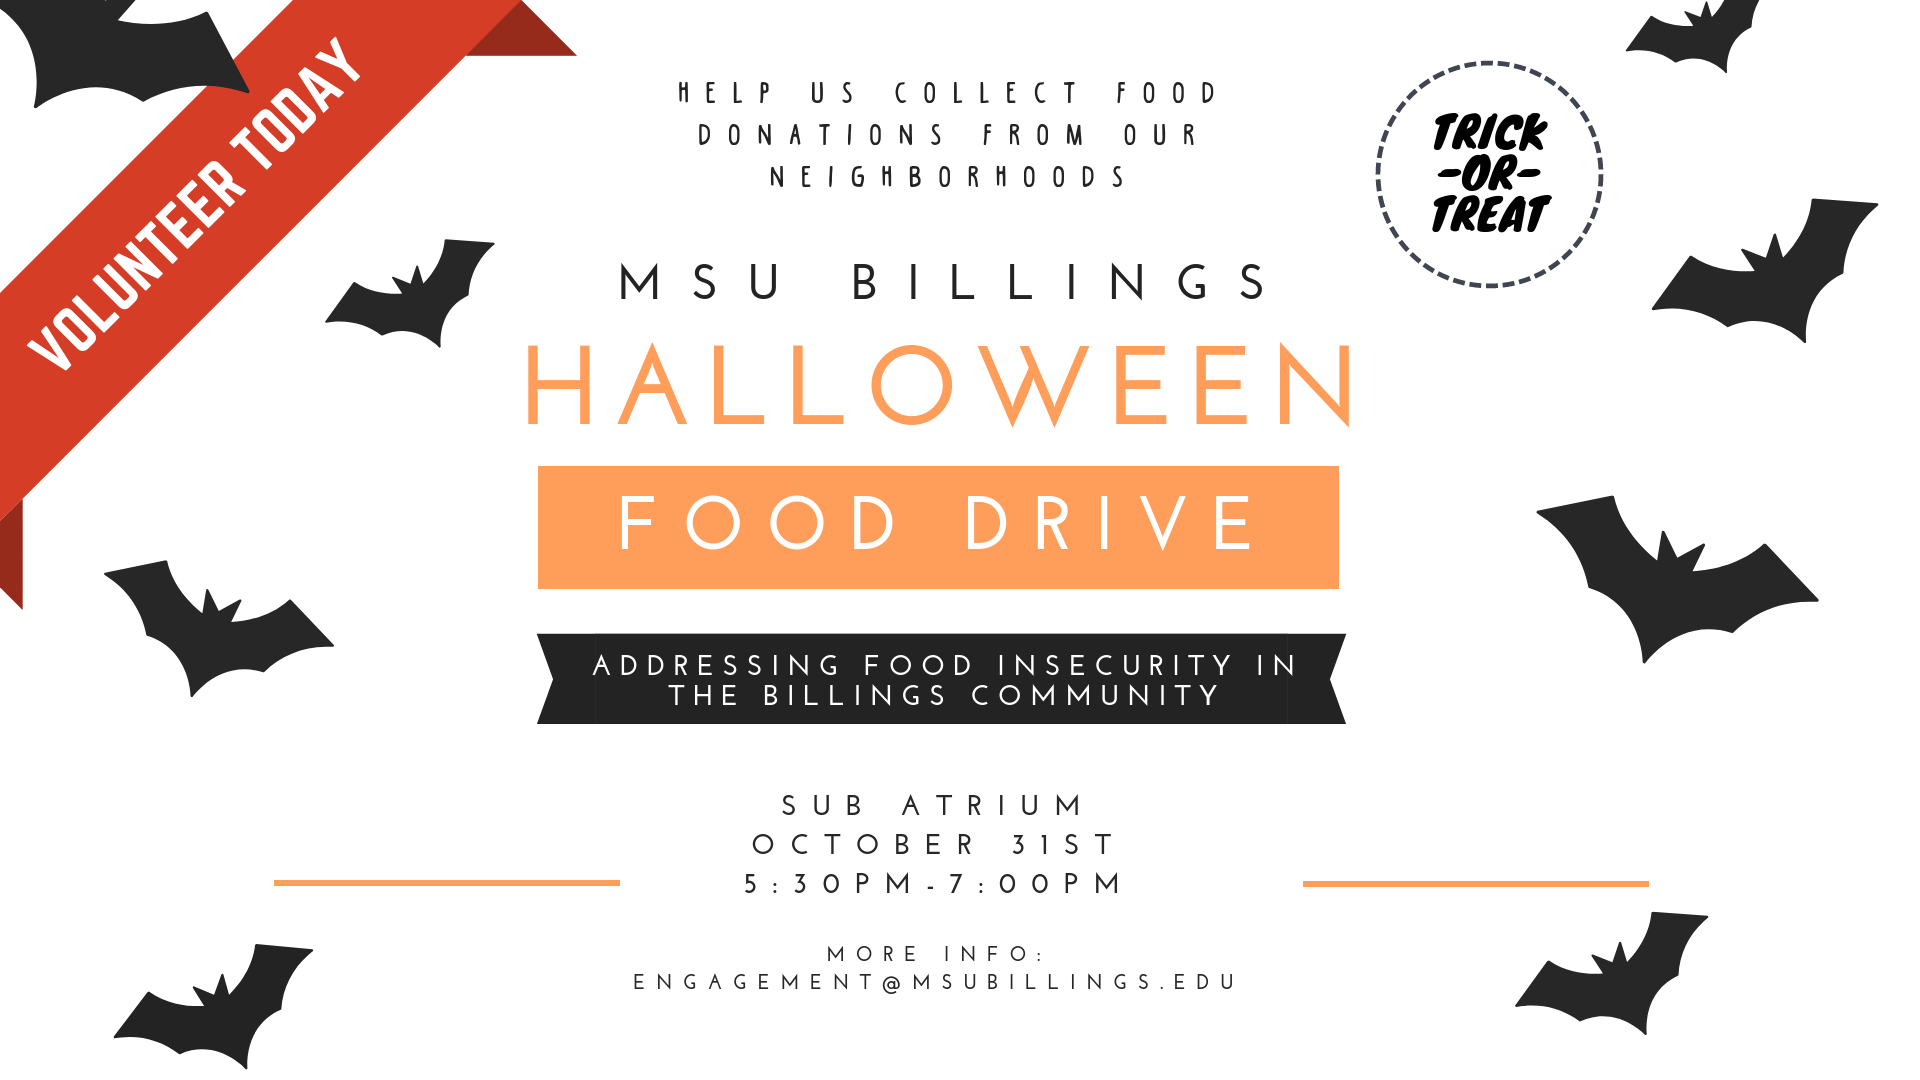 MSUB HALLOWEEN FOOD DRIVE ADDRESSING FOOD INSECURITY IN THE BILLINGS COMMUNITY SUB ATRIUM OCTOBER 31ST 5:30-7:00PM MORE INFO ENGAGEMENT@MSUBILLINGS.EDU